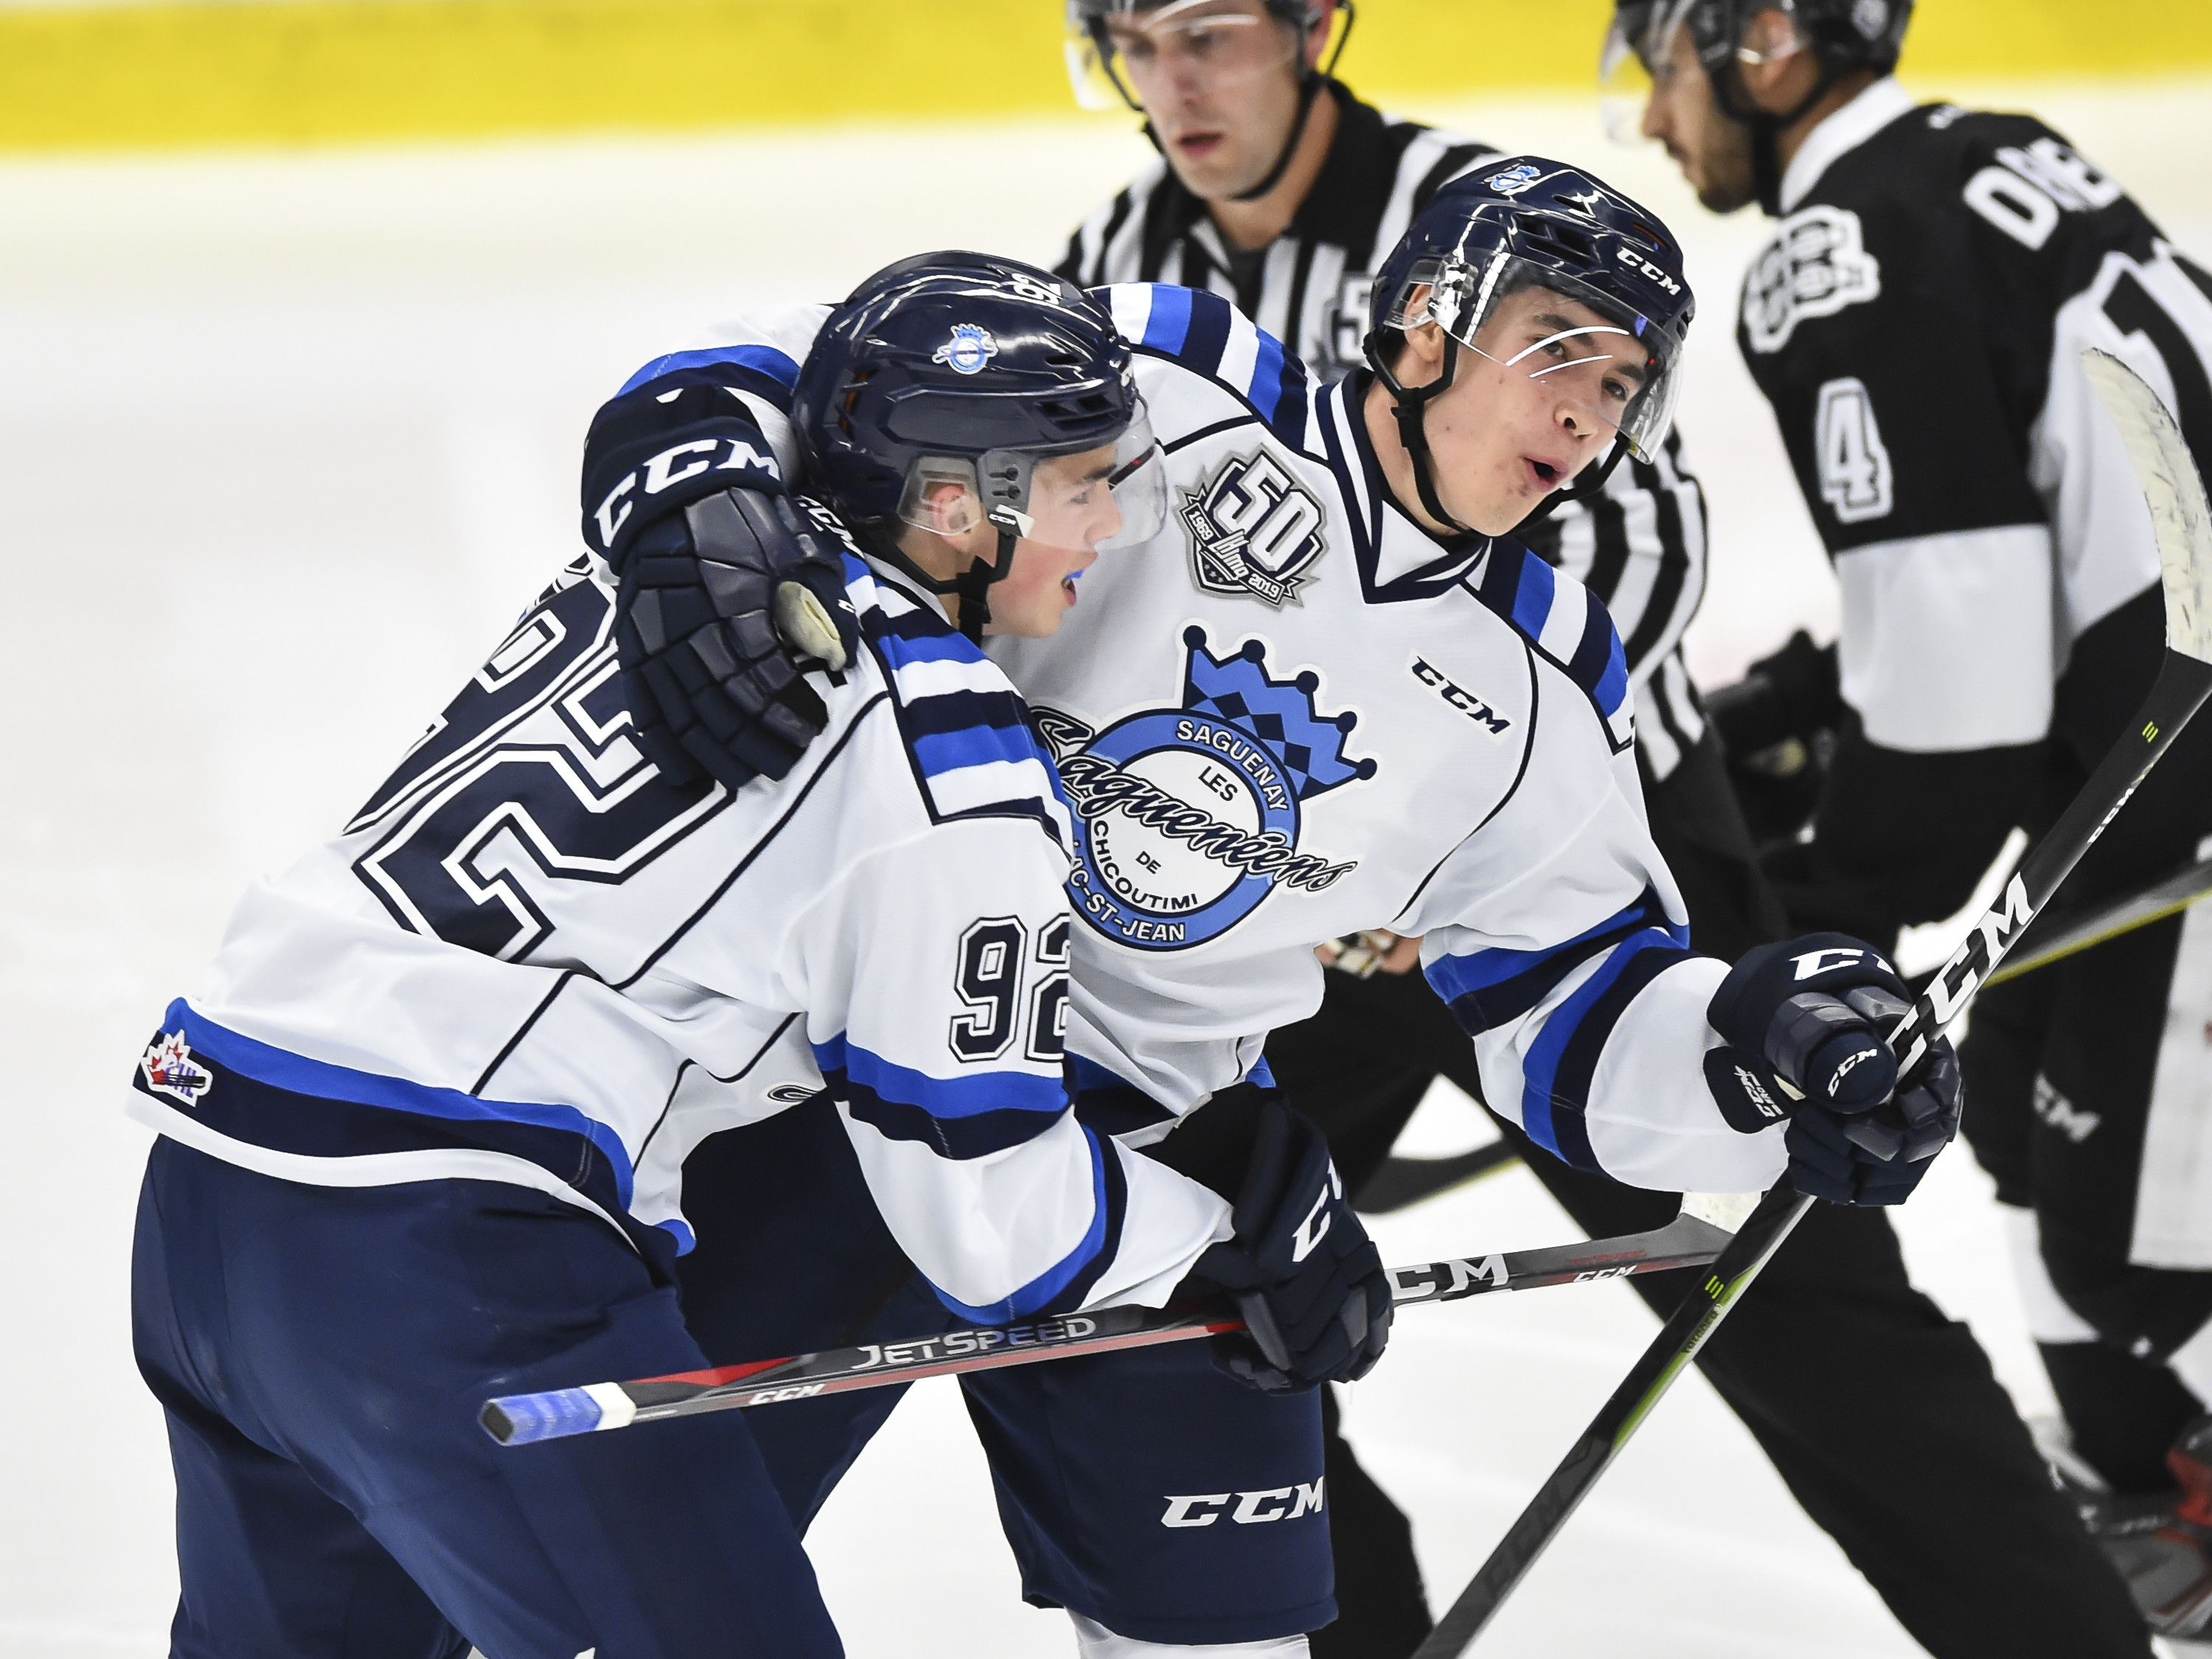 Artemi Kniazev of the Chicoutimi Sagueneens celebrates his second period goal with teammate Hendrix Lapierre against the Blainville-Boisbriand Armada during the QMJHL game at Centre d'Excellence Sports Rousseau on September 28, 2018 in Boisbriand, Quebec,